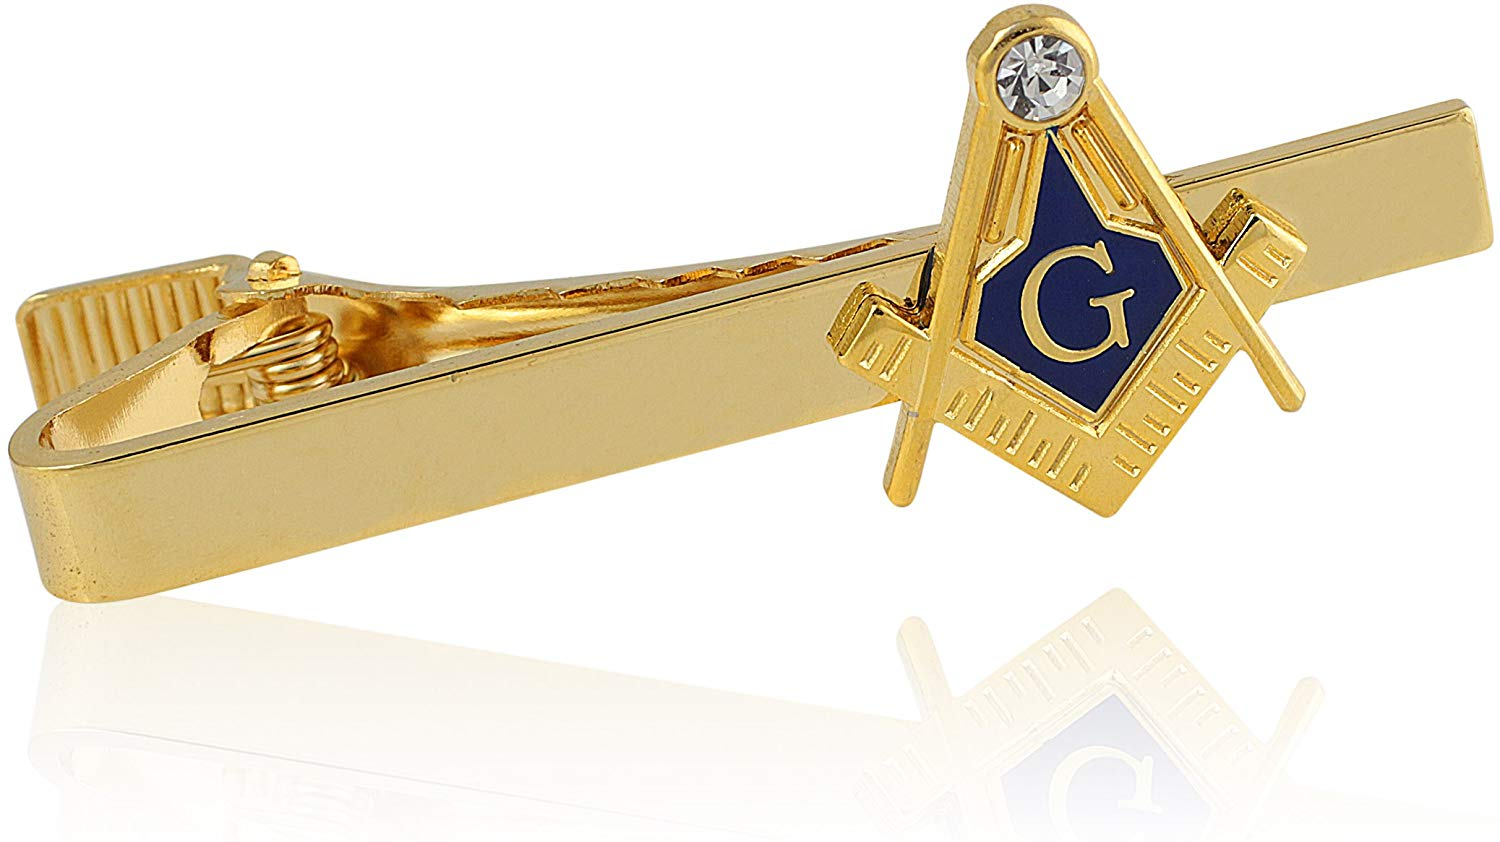 Compass and Square Gold Toned Masonic Tie Clip - SolomonsOrder